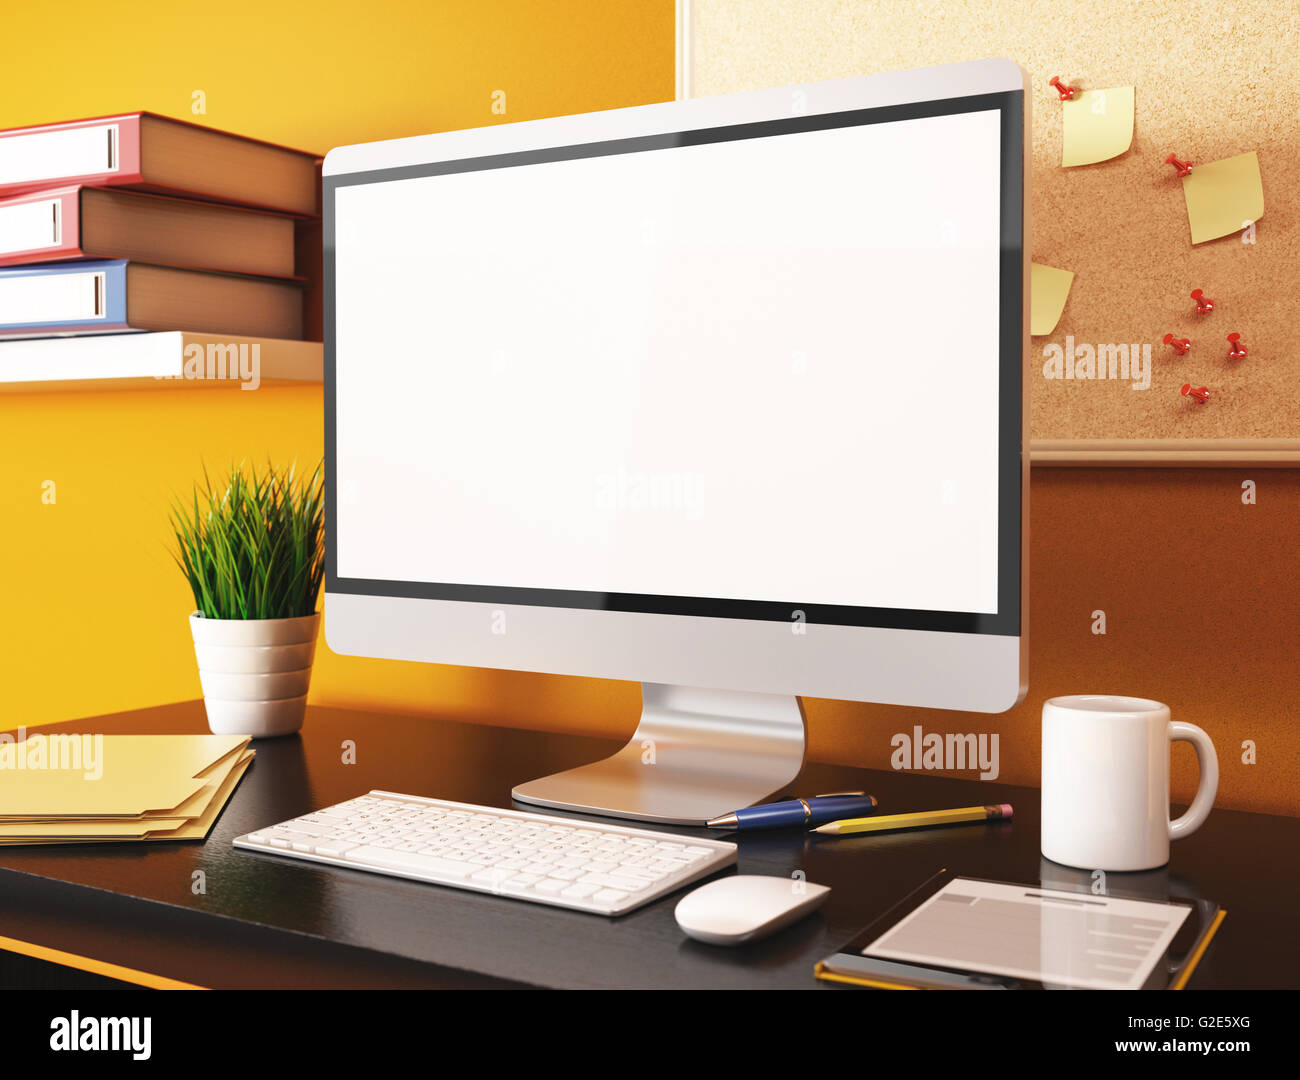 3d Illustration Office With Blank Computer Screen Mockup Stock